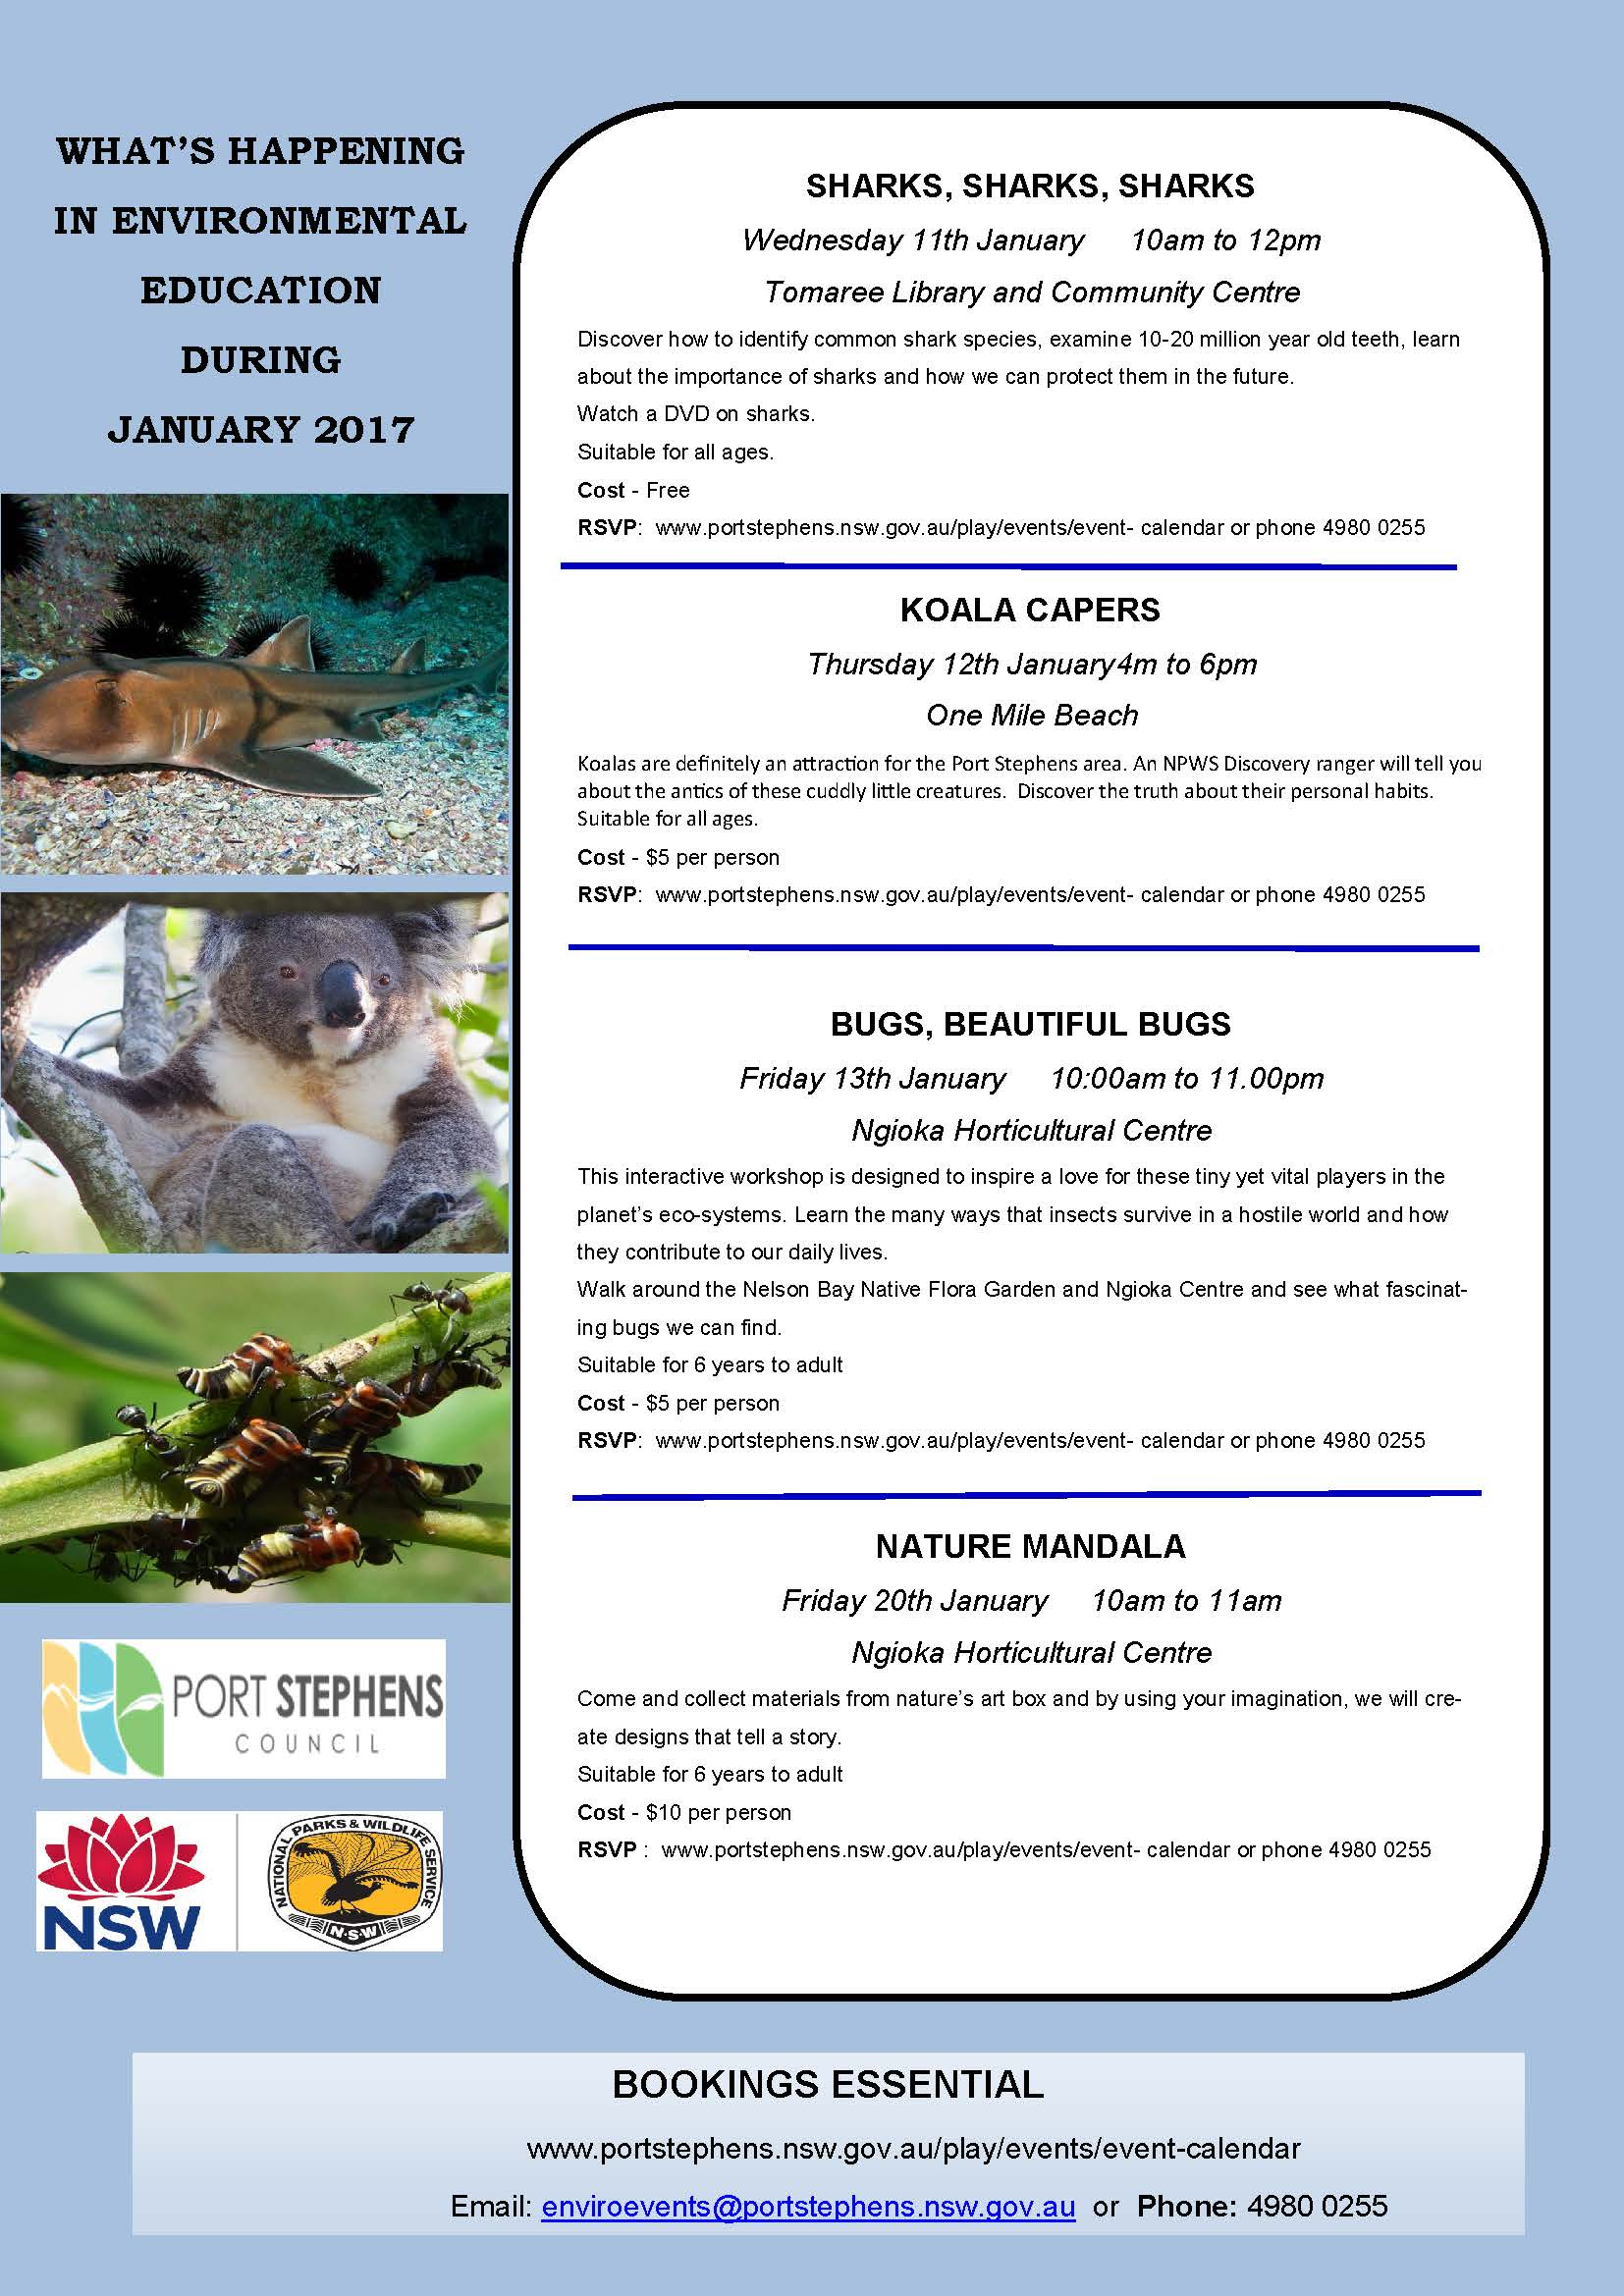 whats-happening-in-environmental-education-during-january-2017_page_2